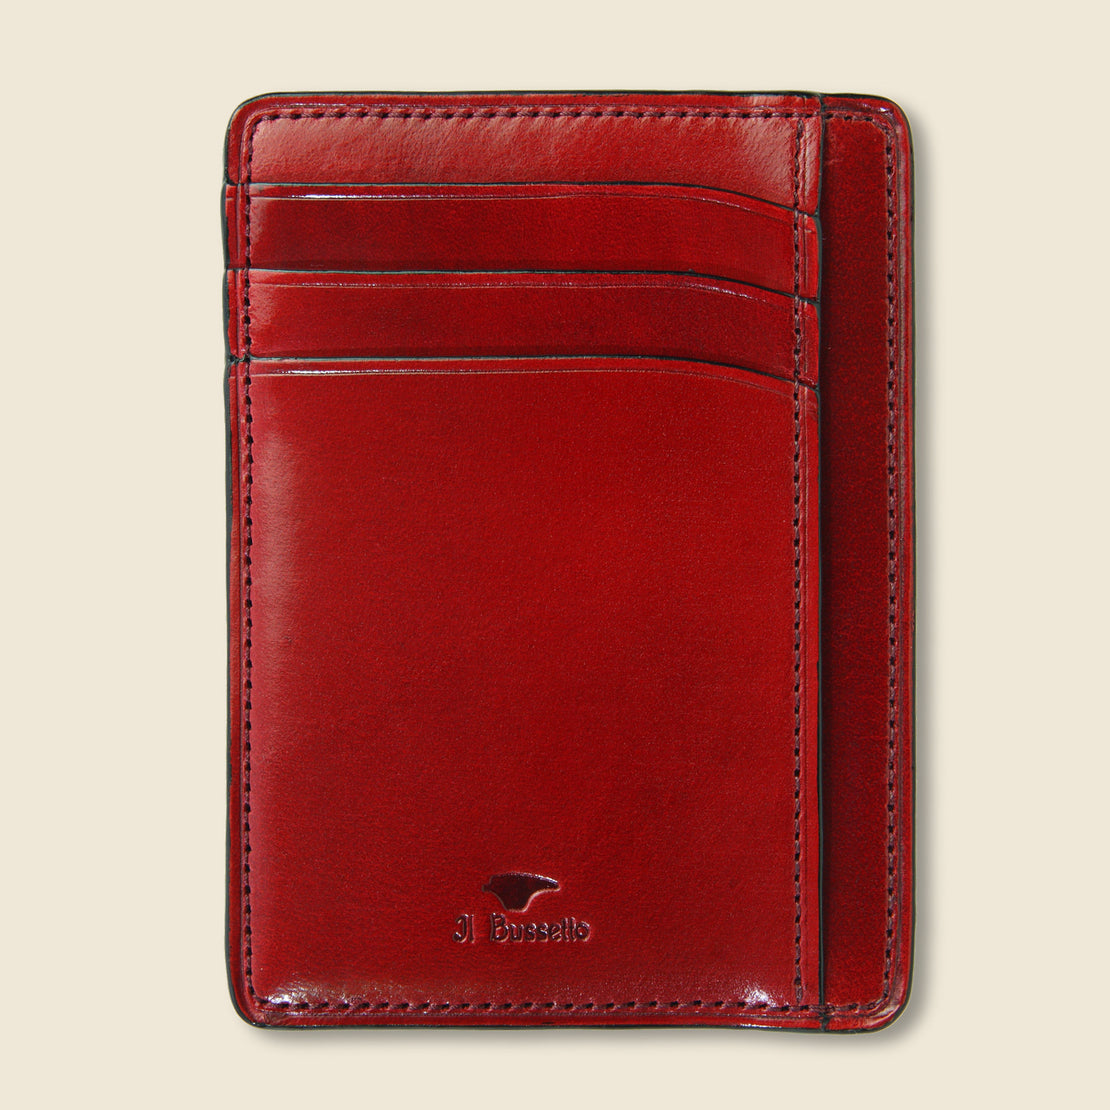 Il Bussetto Card and Document Case - Cherry